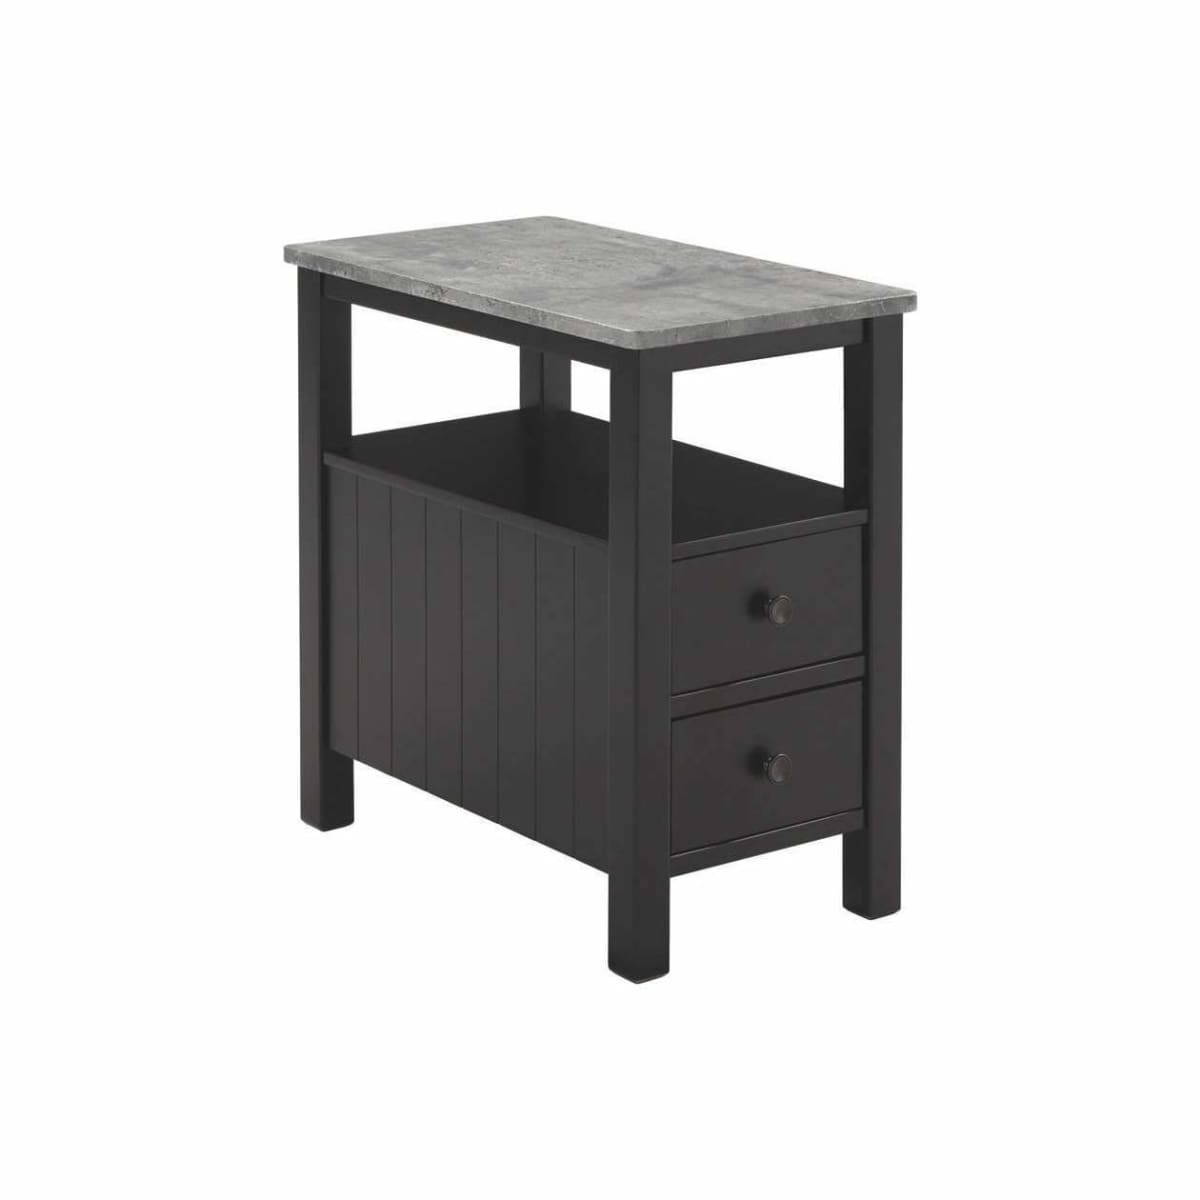 Ezmonei Chairside End Table - END TABLE/SIDE TABLE